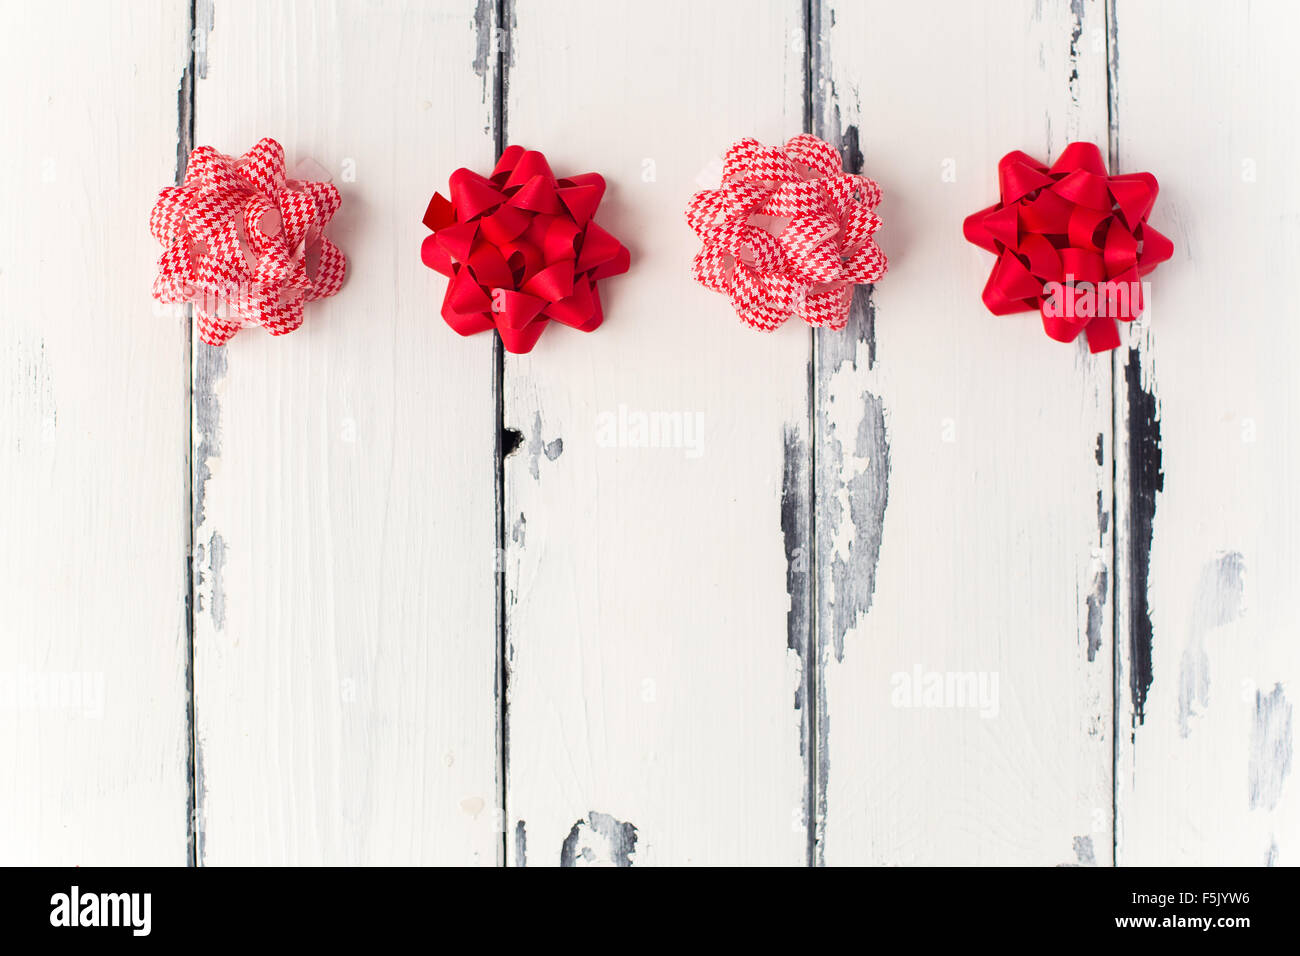 red bows on white wooden background - Stock Image